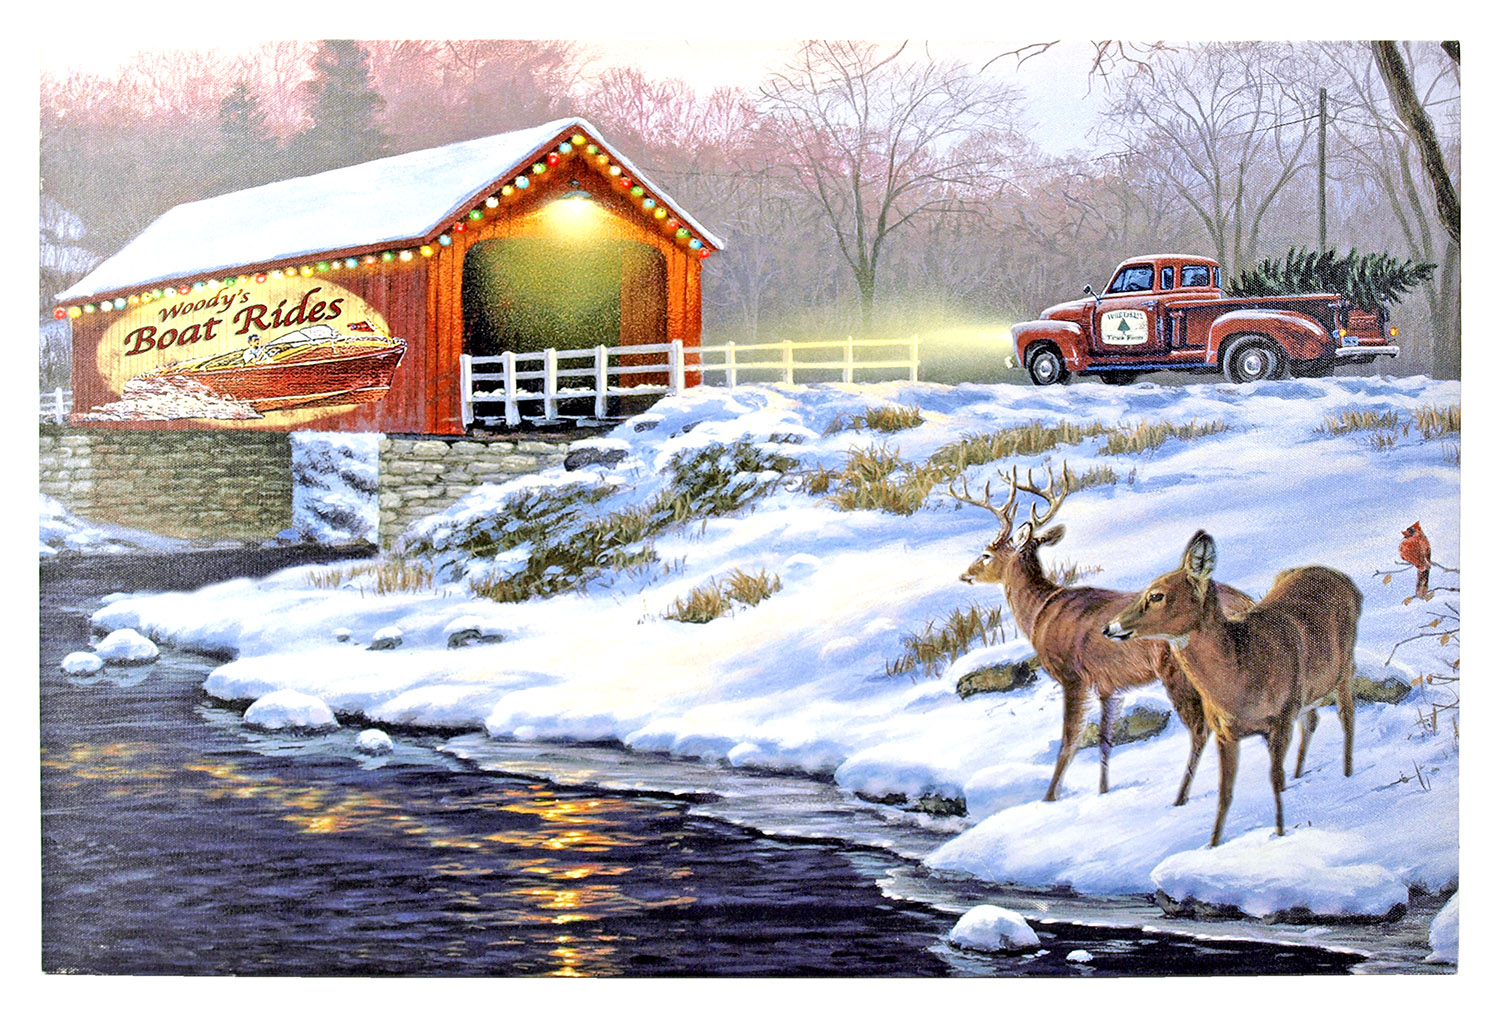 16 in x 12 in LED Canvas Wall Art - Holiday Traditions